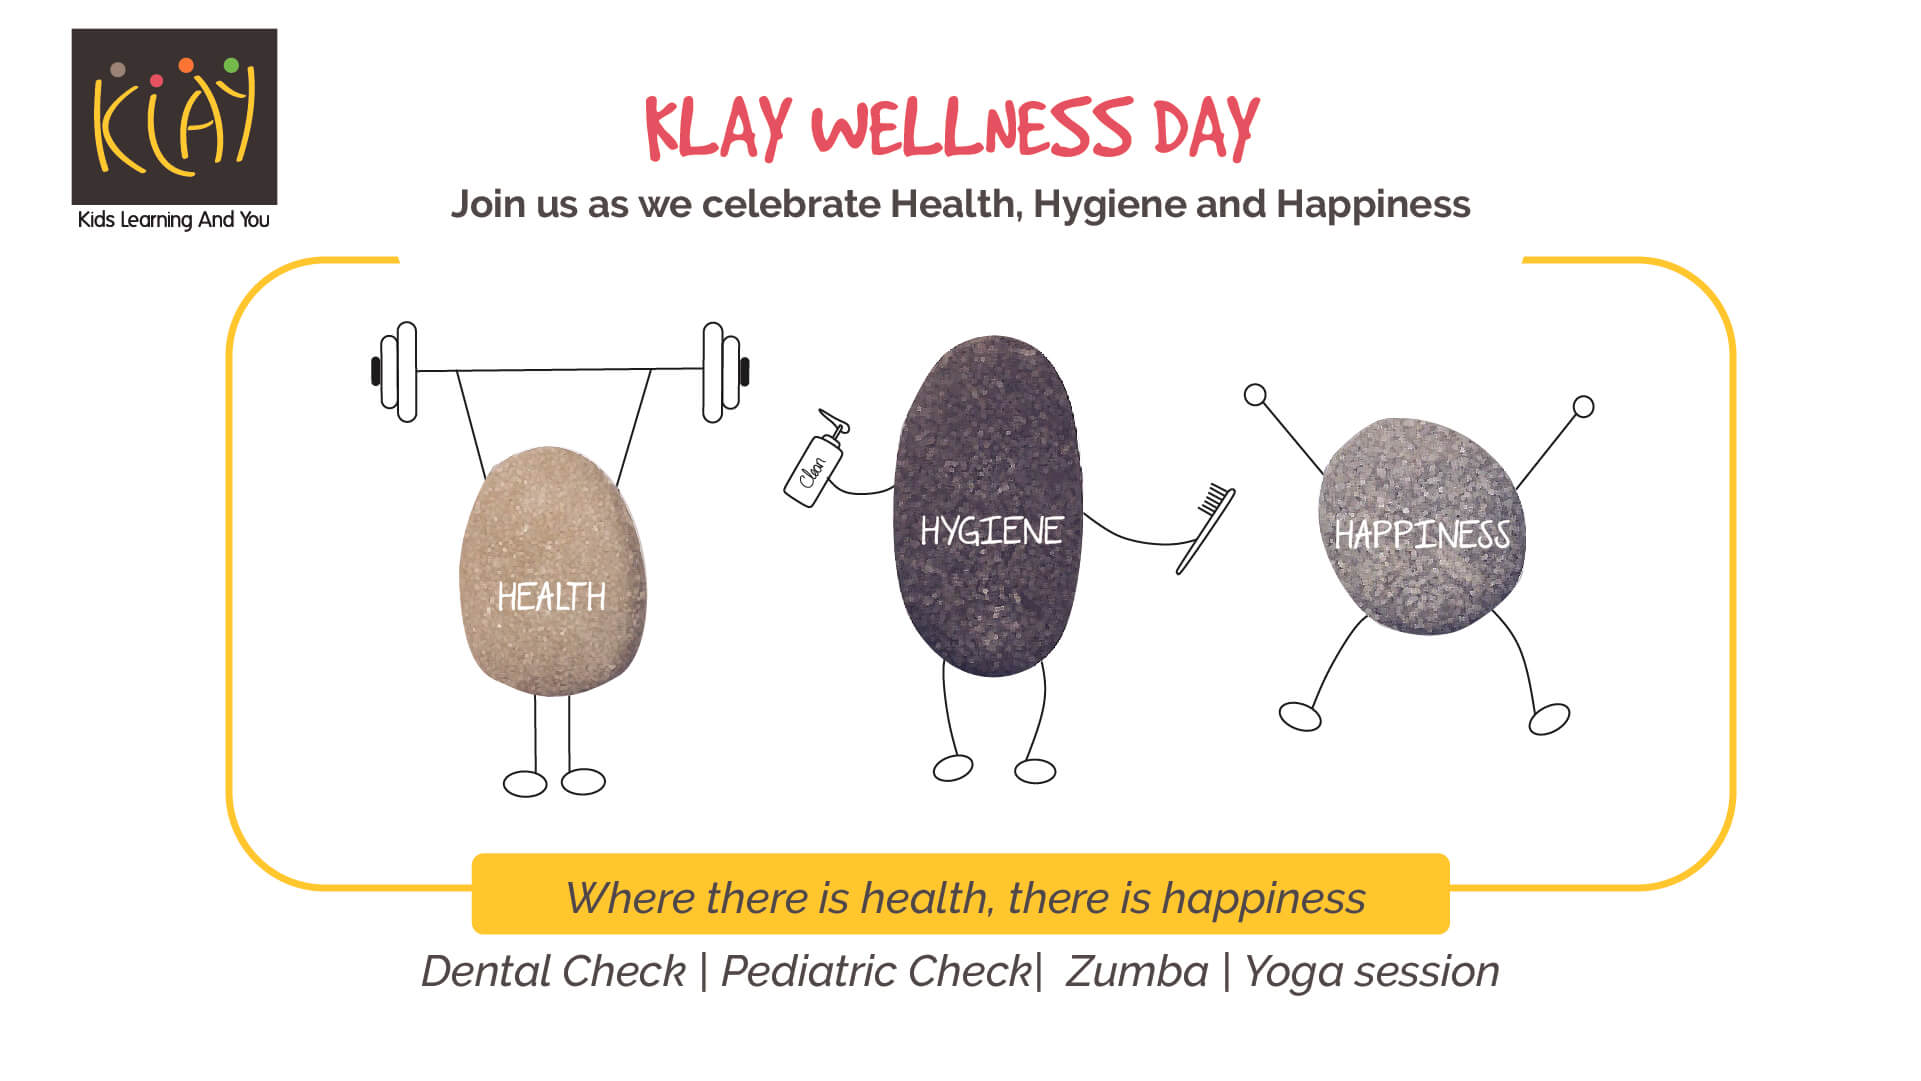 KLAY Wellness Day Cover Image